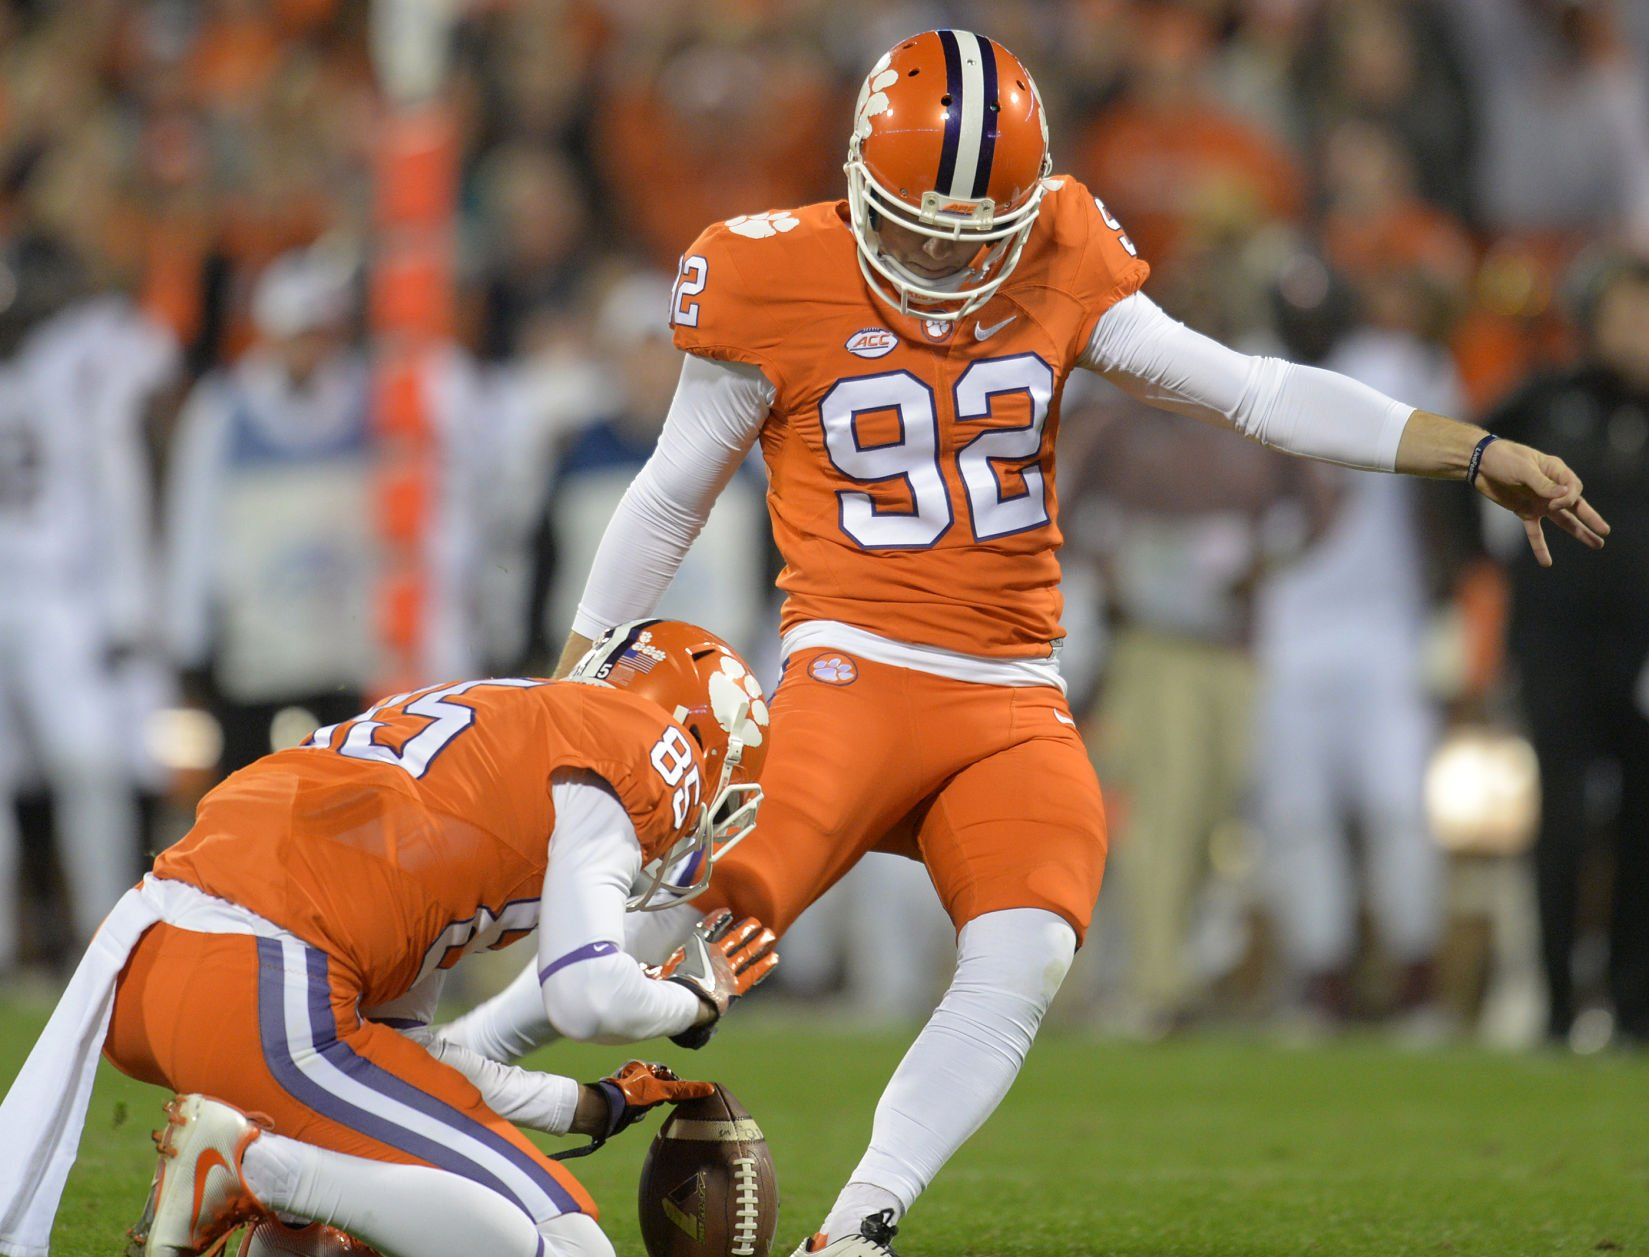 Clemson kicker Greg Huegel hurt at practice Wednesday